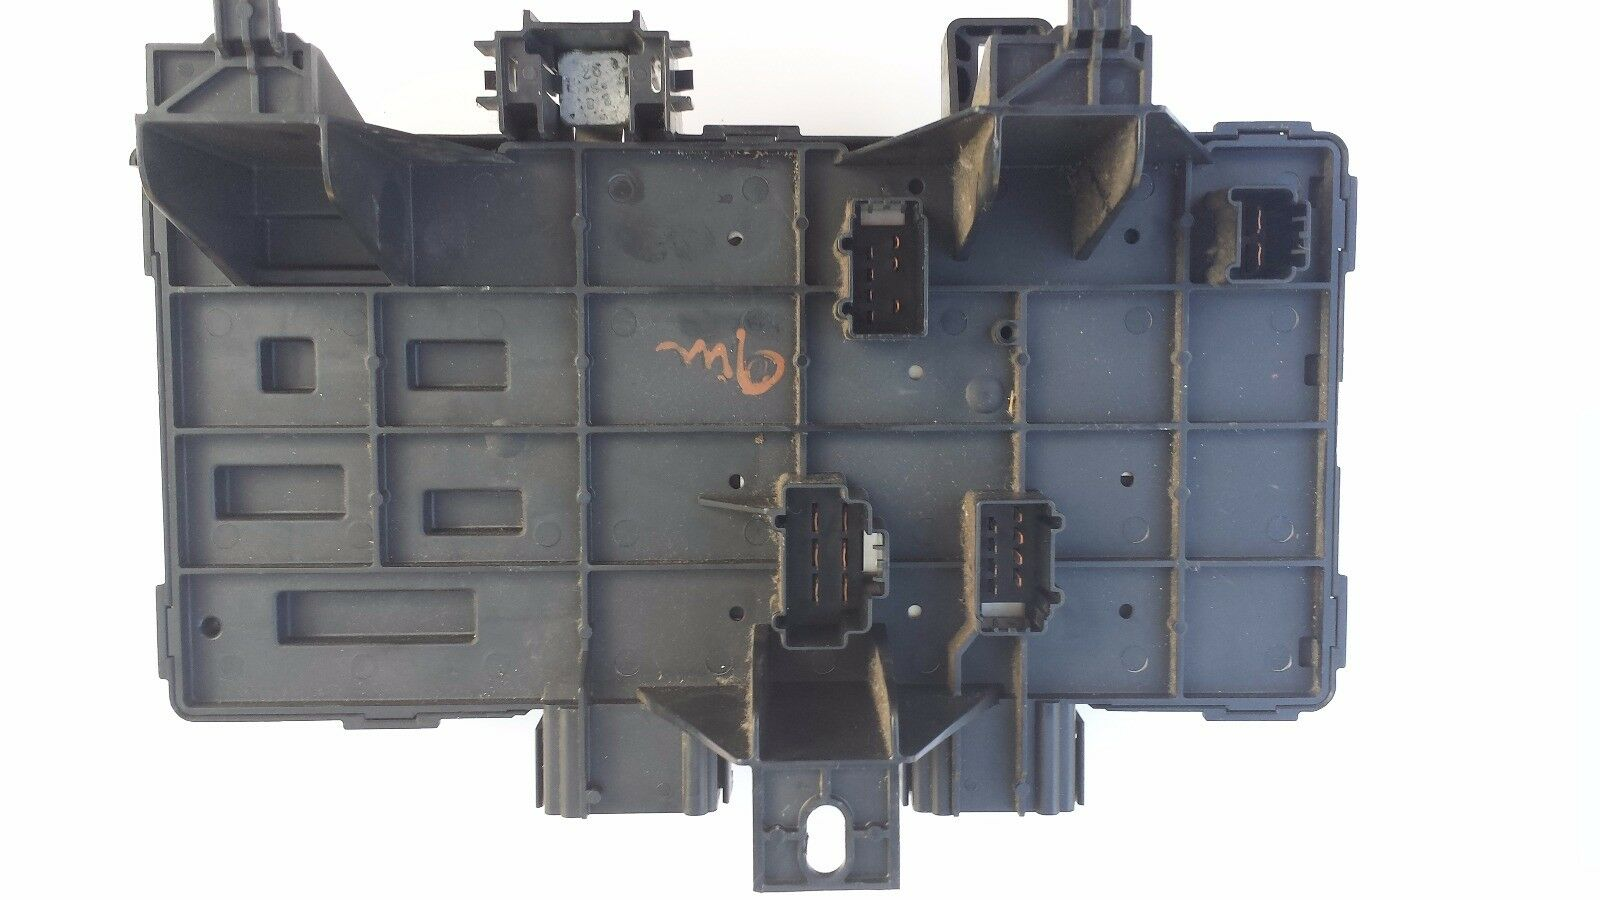 2003 Ford Expedition Lincoln Navigator - Fuse Box Relay 2l1t-14a067-ap